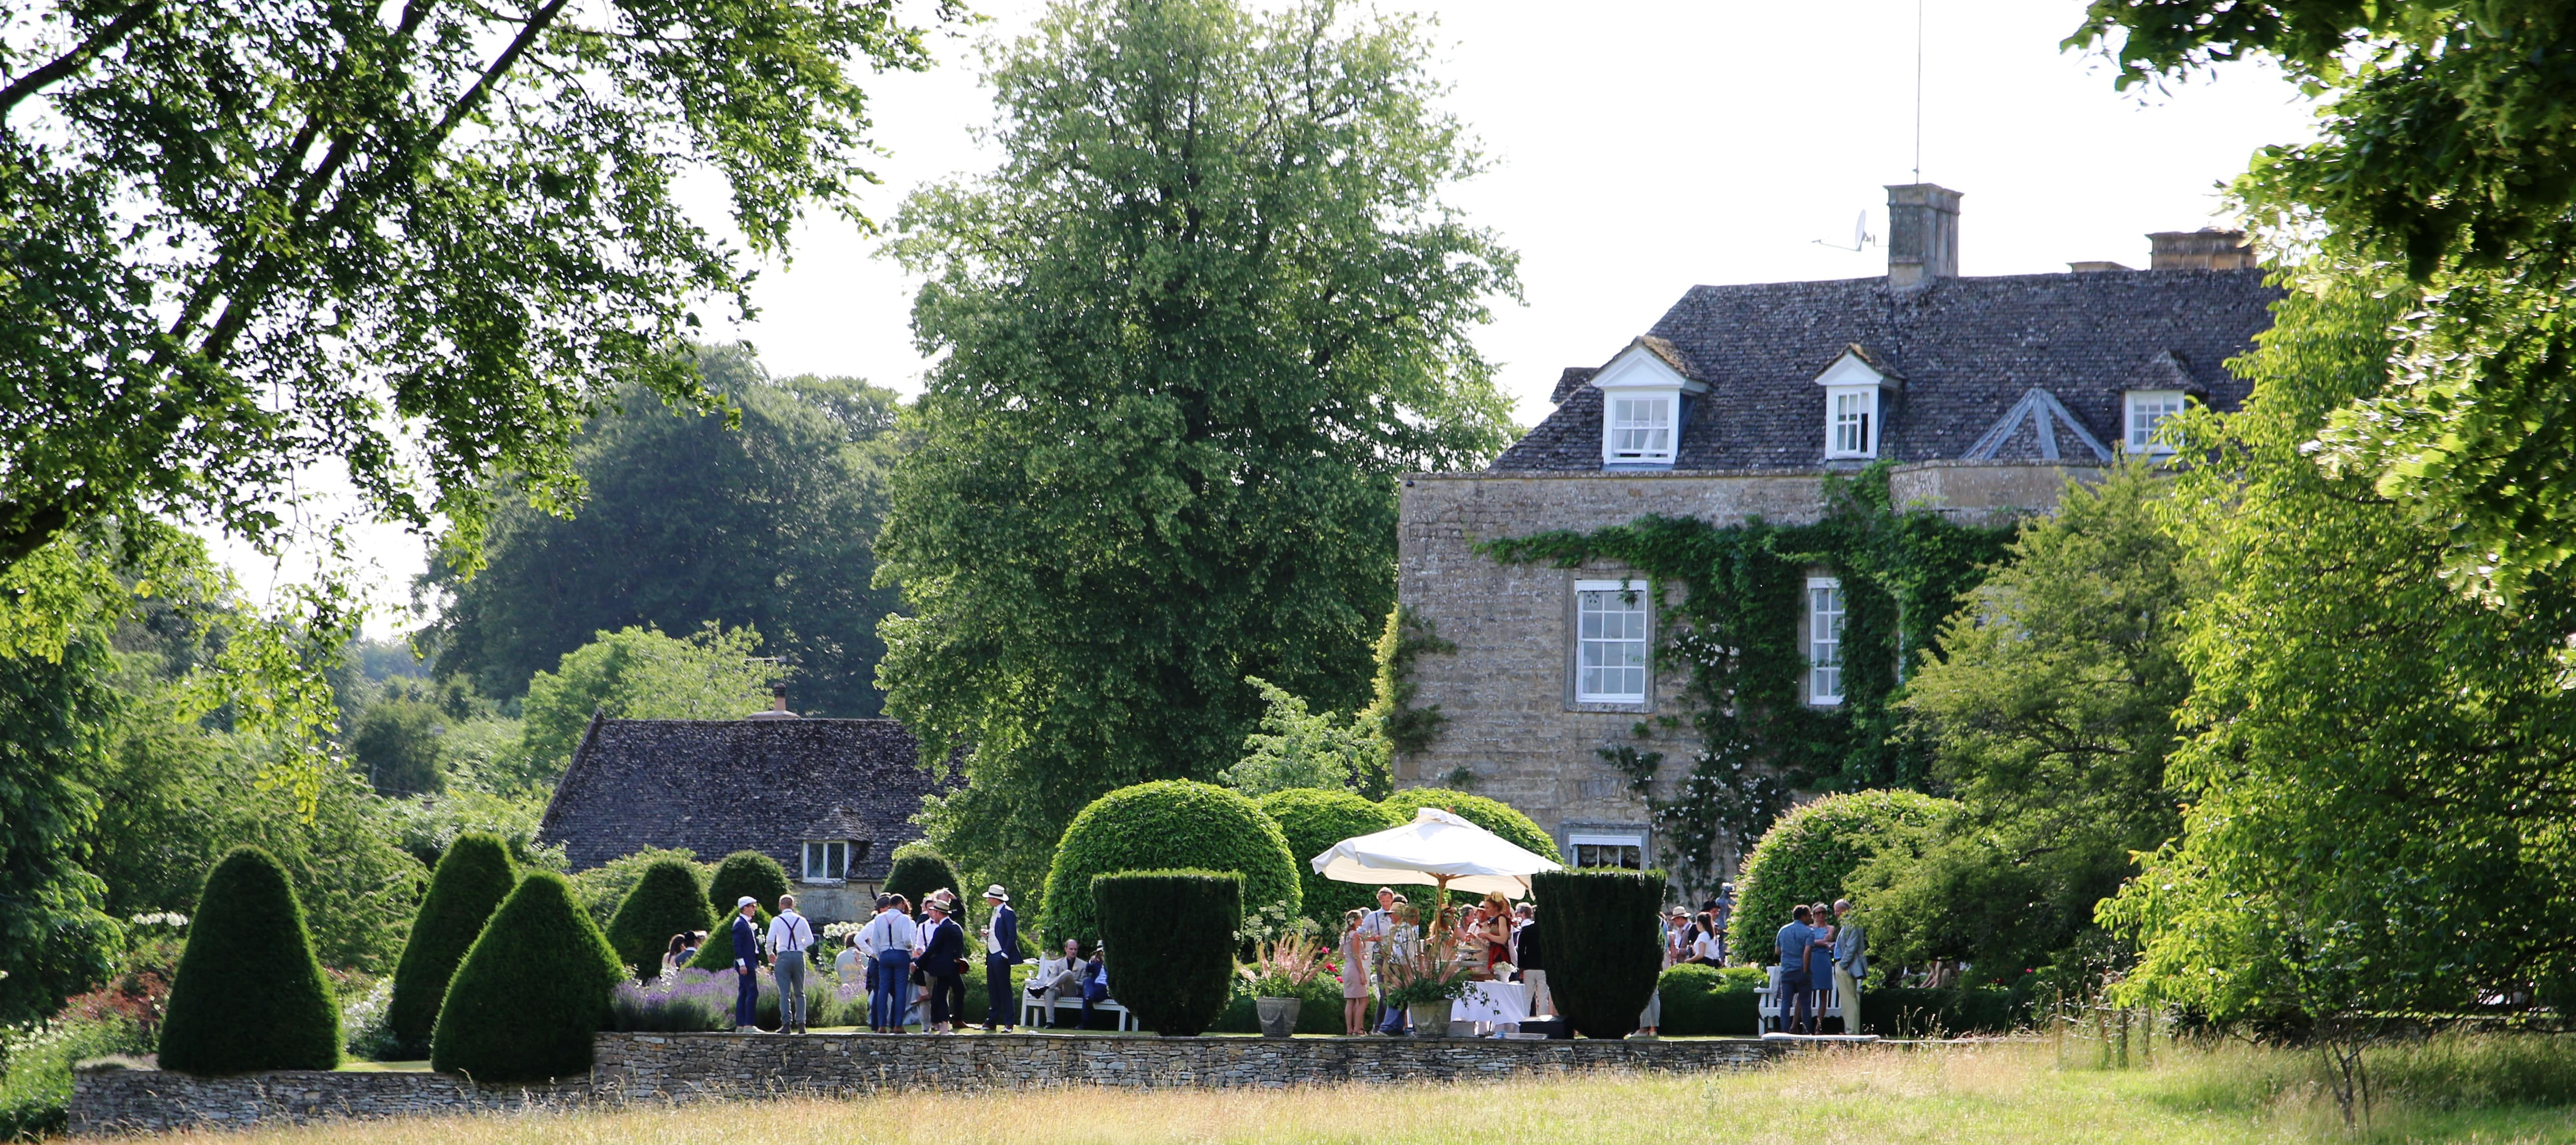 Cornwell-Manor-Garden-Party